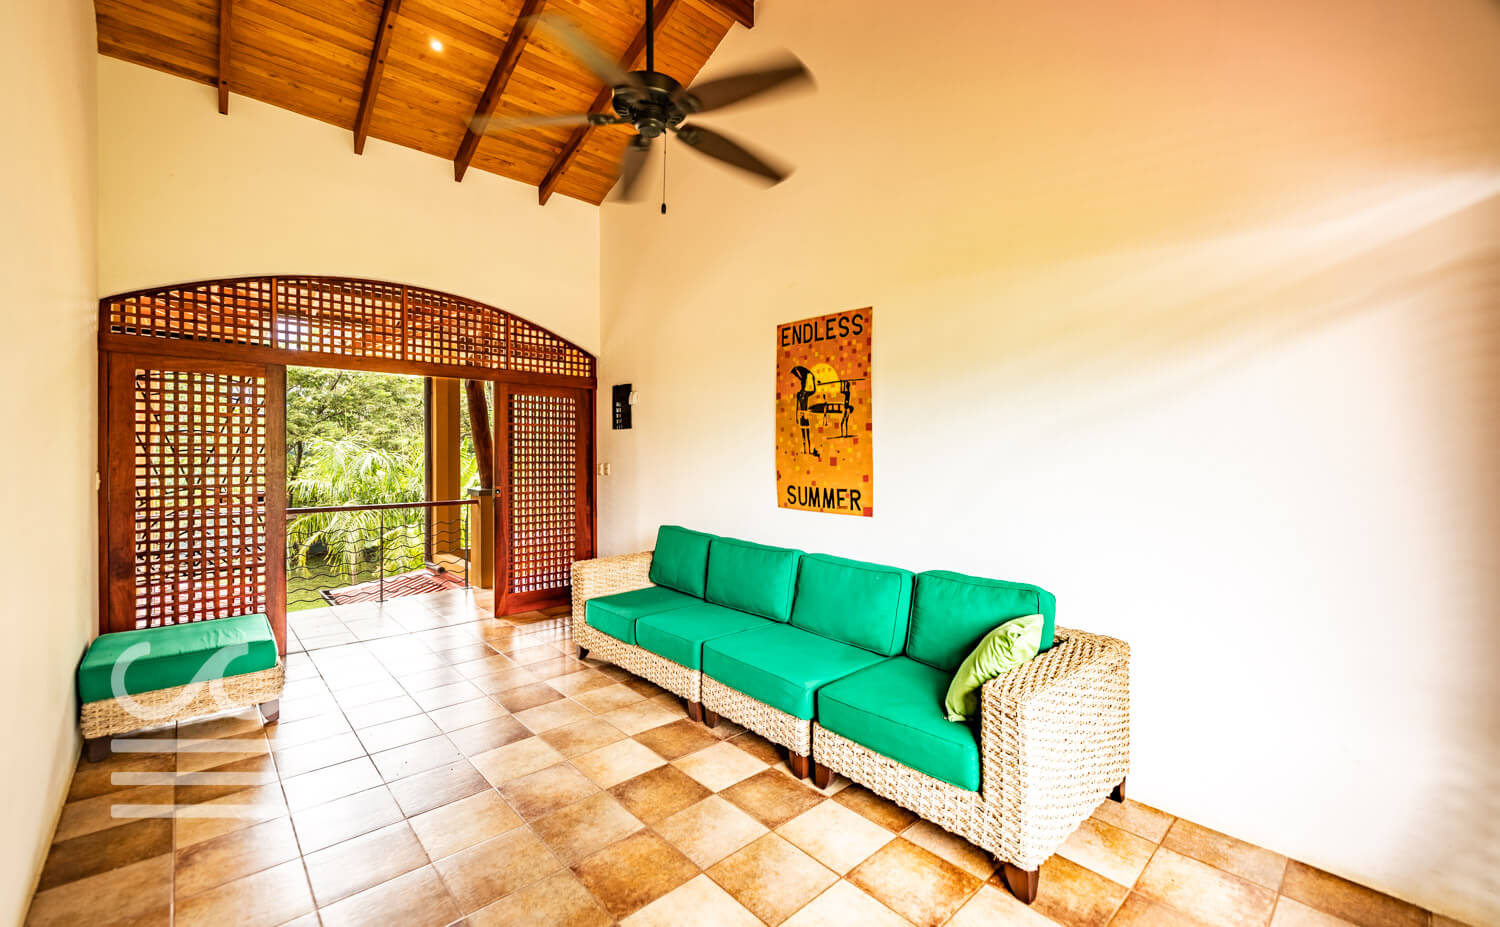 Endless-Summer-Wanderlust-Realty-Real-Estate-Rentals-Nosara-Costa-Rica-27.jpg